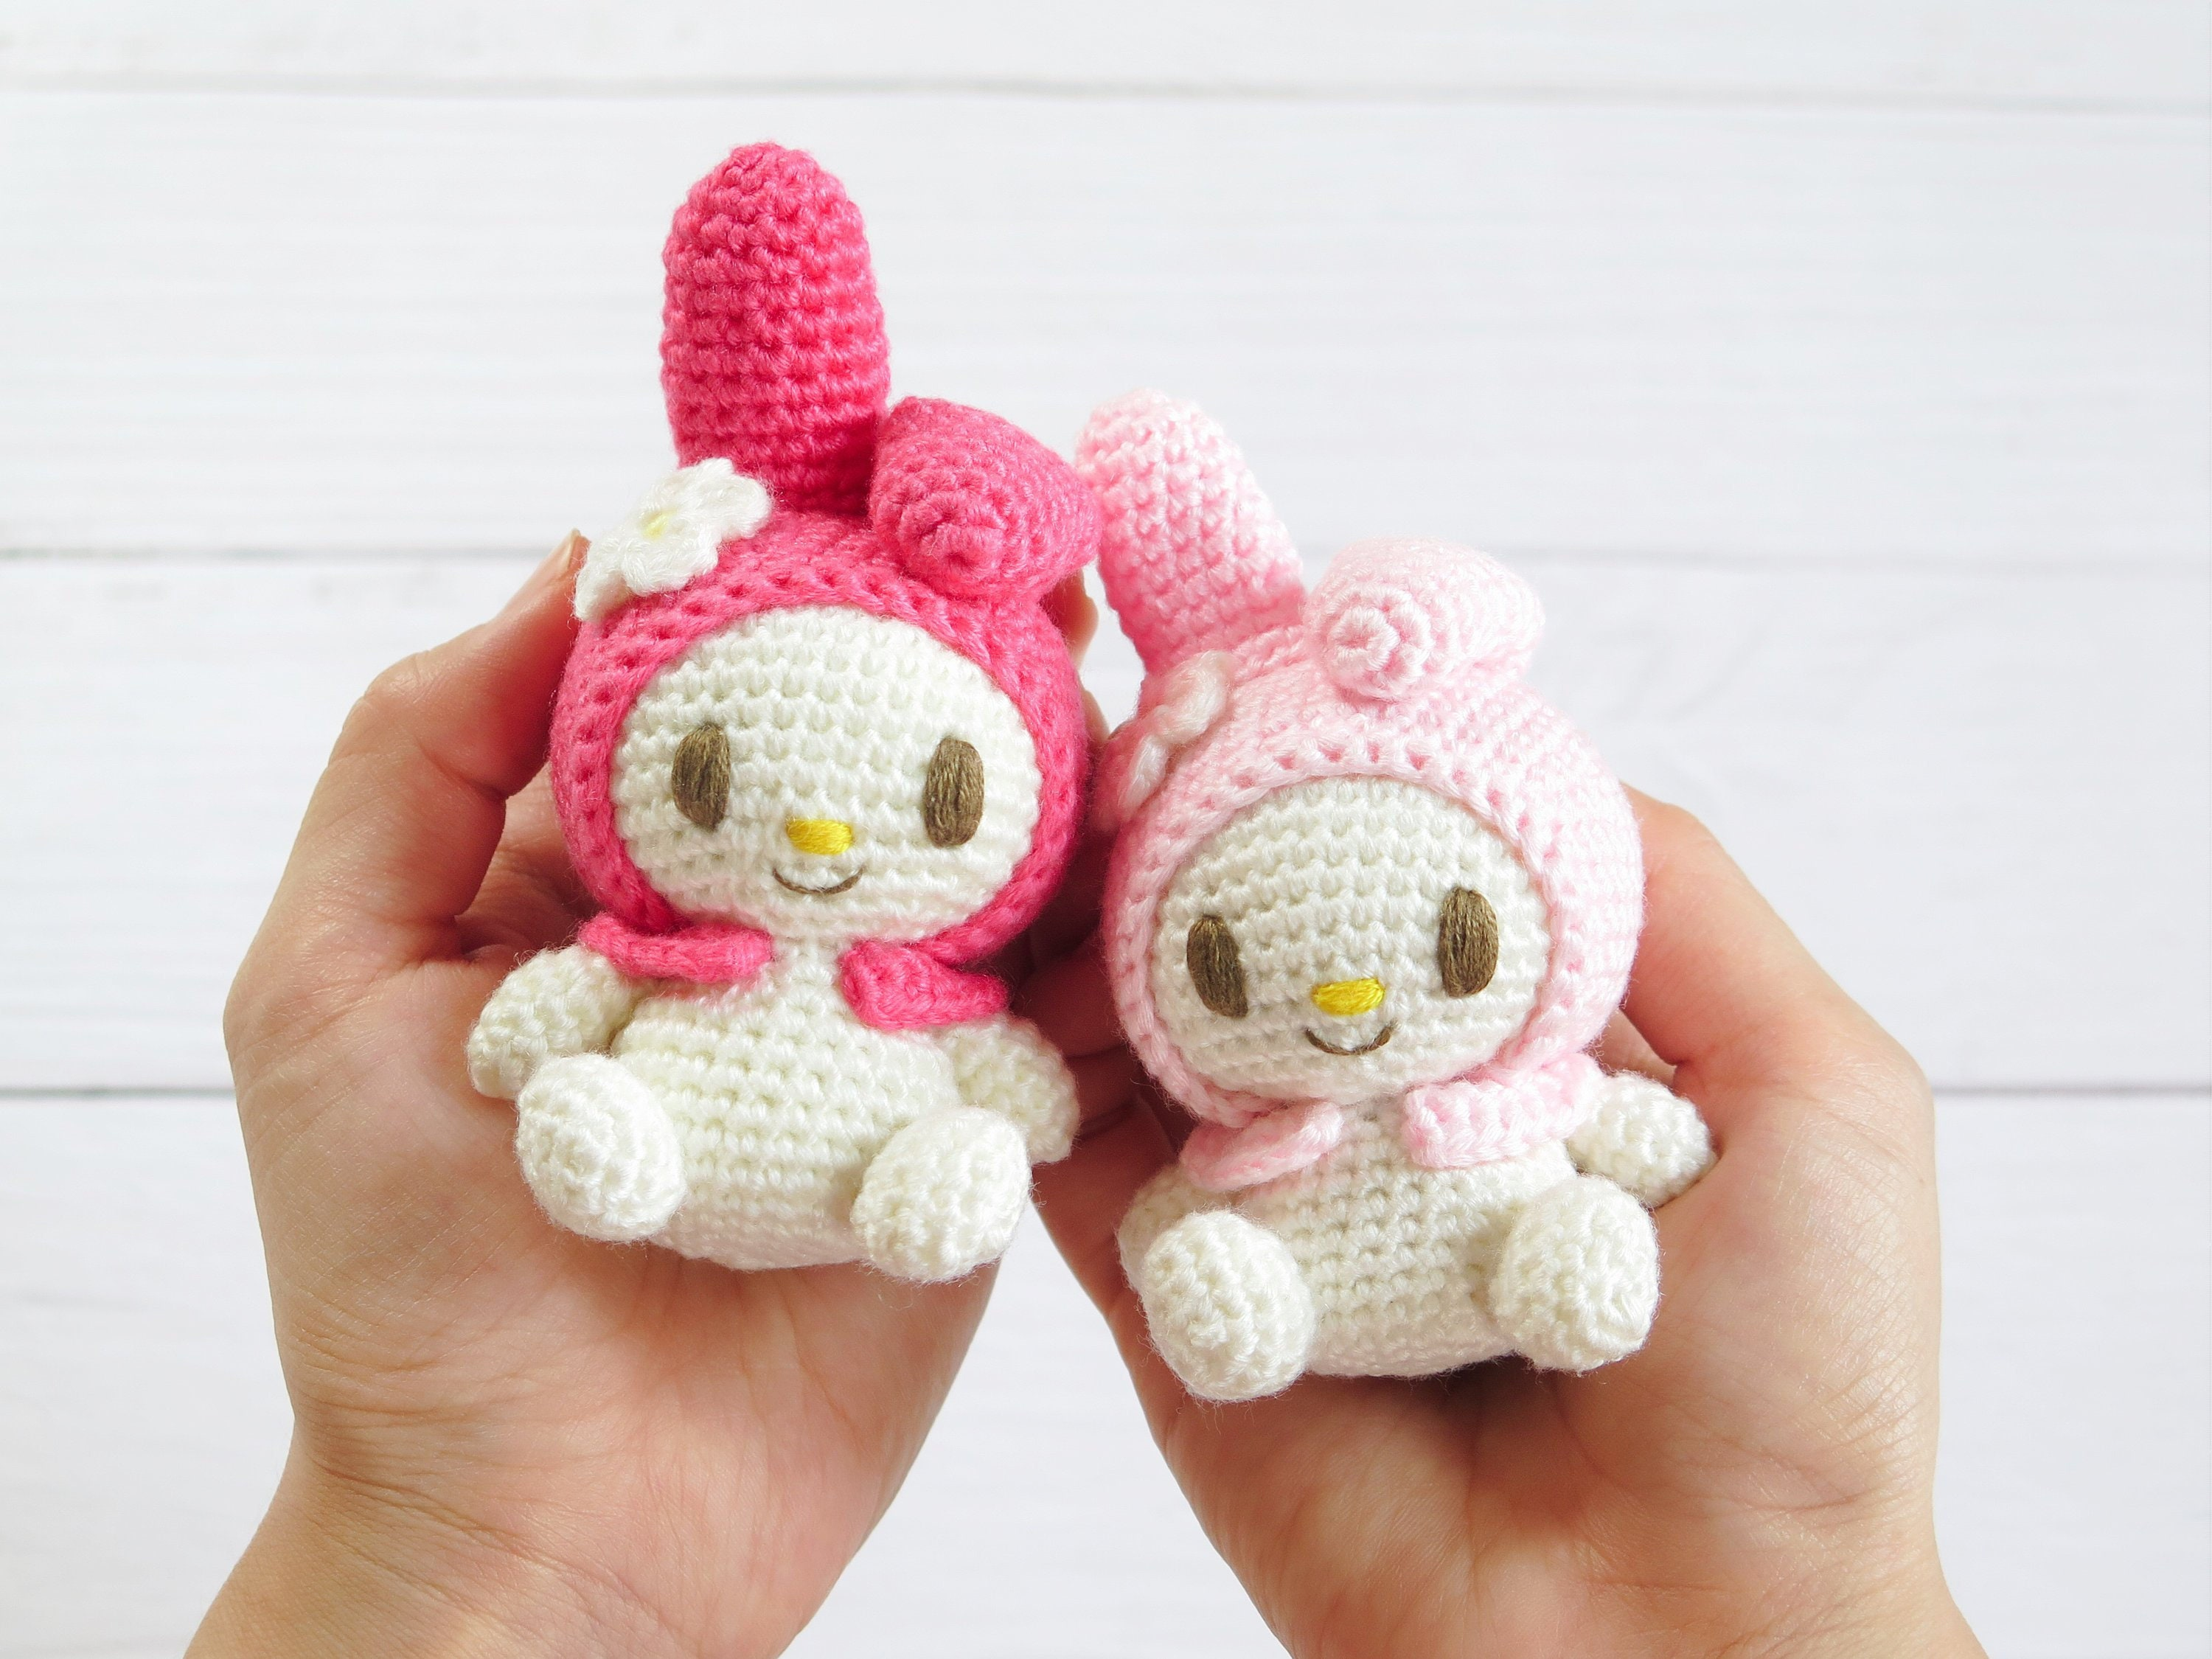 Crochet Pattern * Hello Kitty Angel with Heart – Stricken und ... | 2250x3000